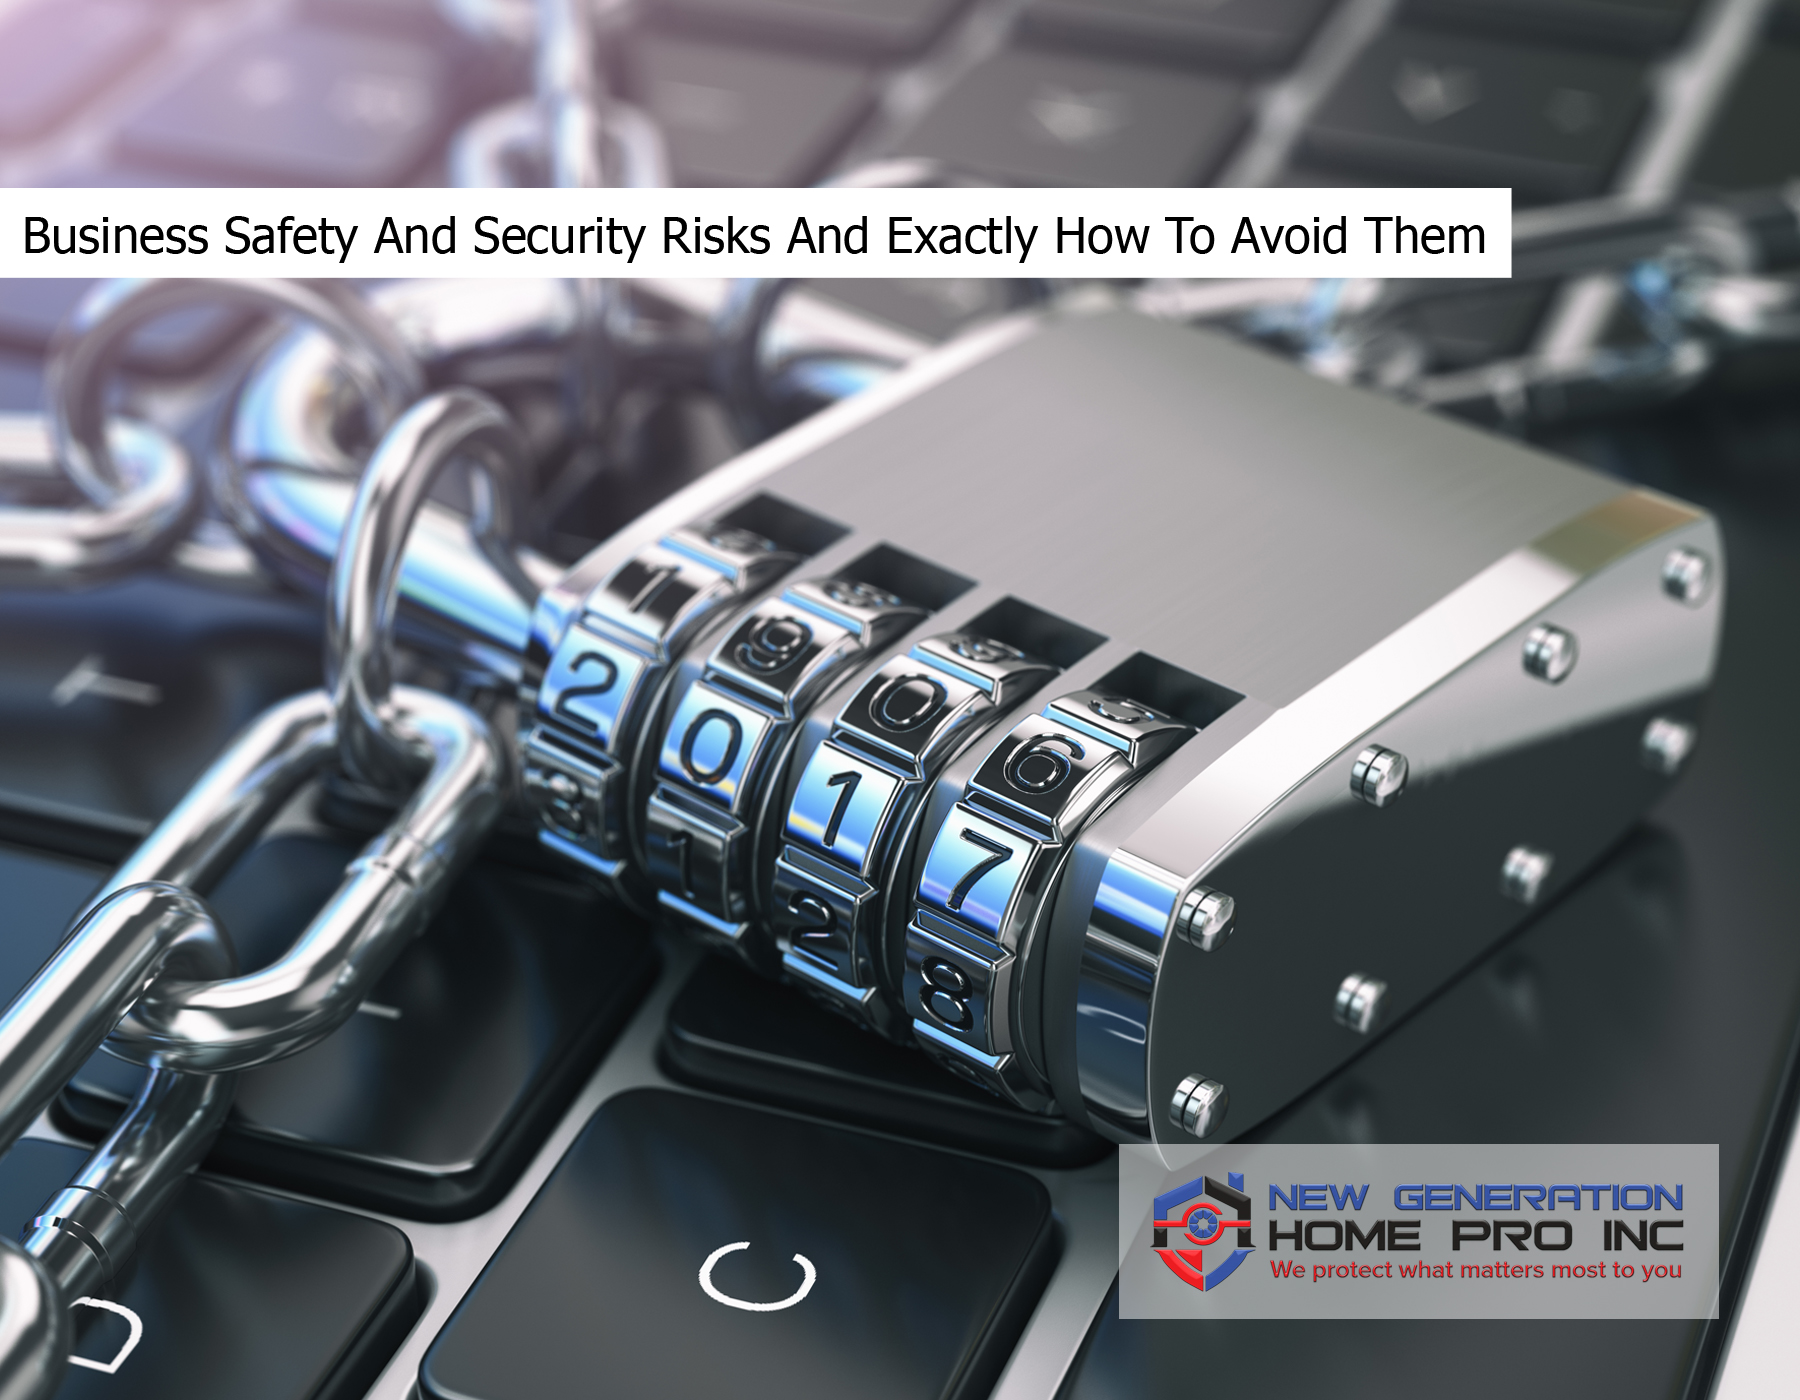 Business Safety And Security Risks And Exactly How To Avoid Them